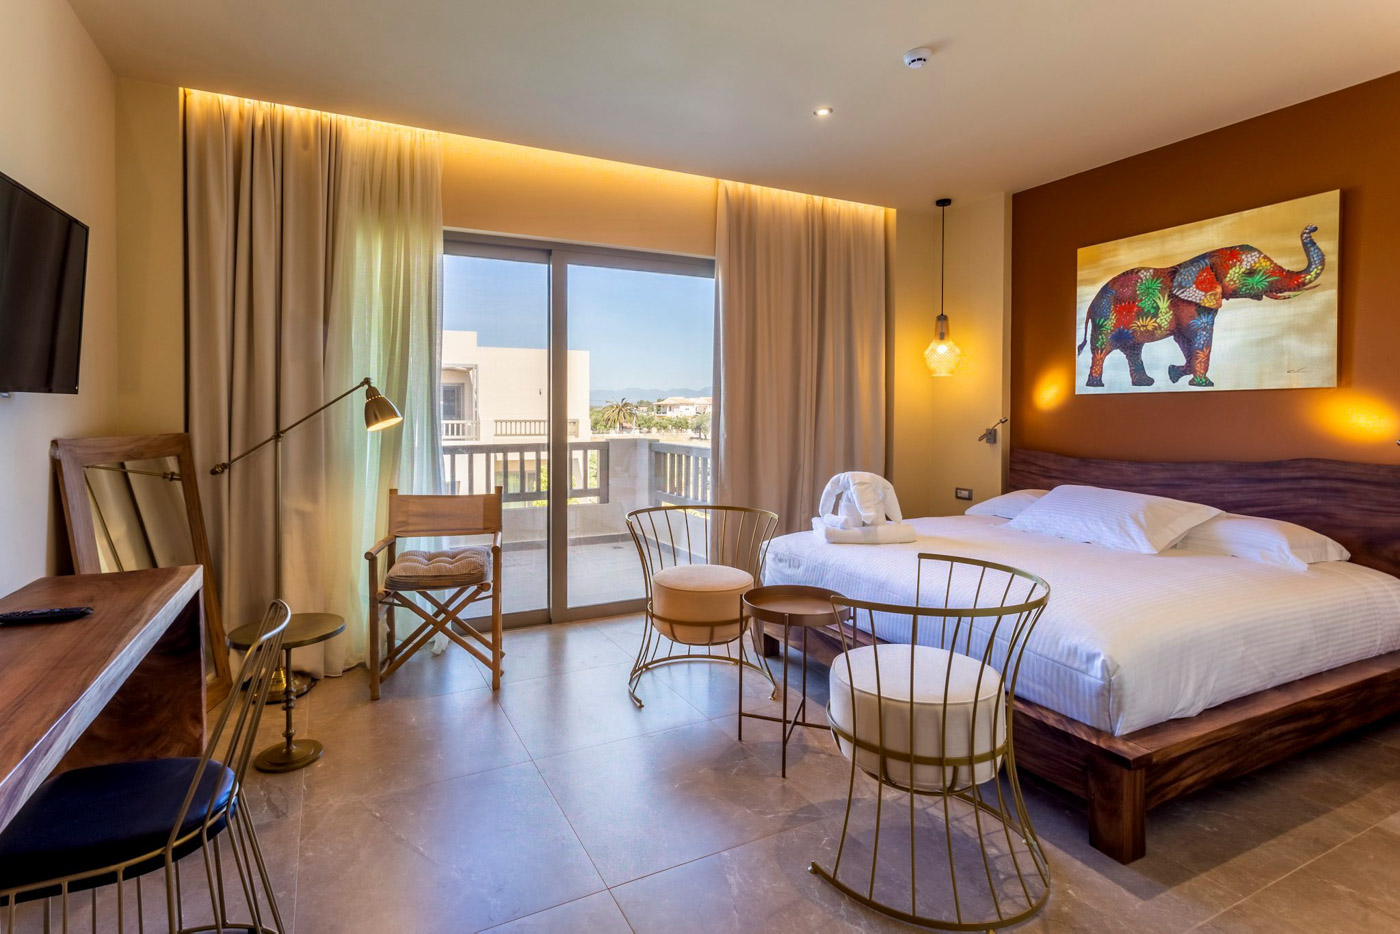 Elysian luxury hotel and spa Kalamata superior room with a balcony door